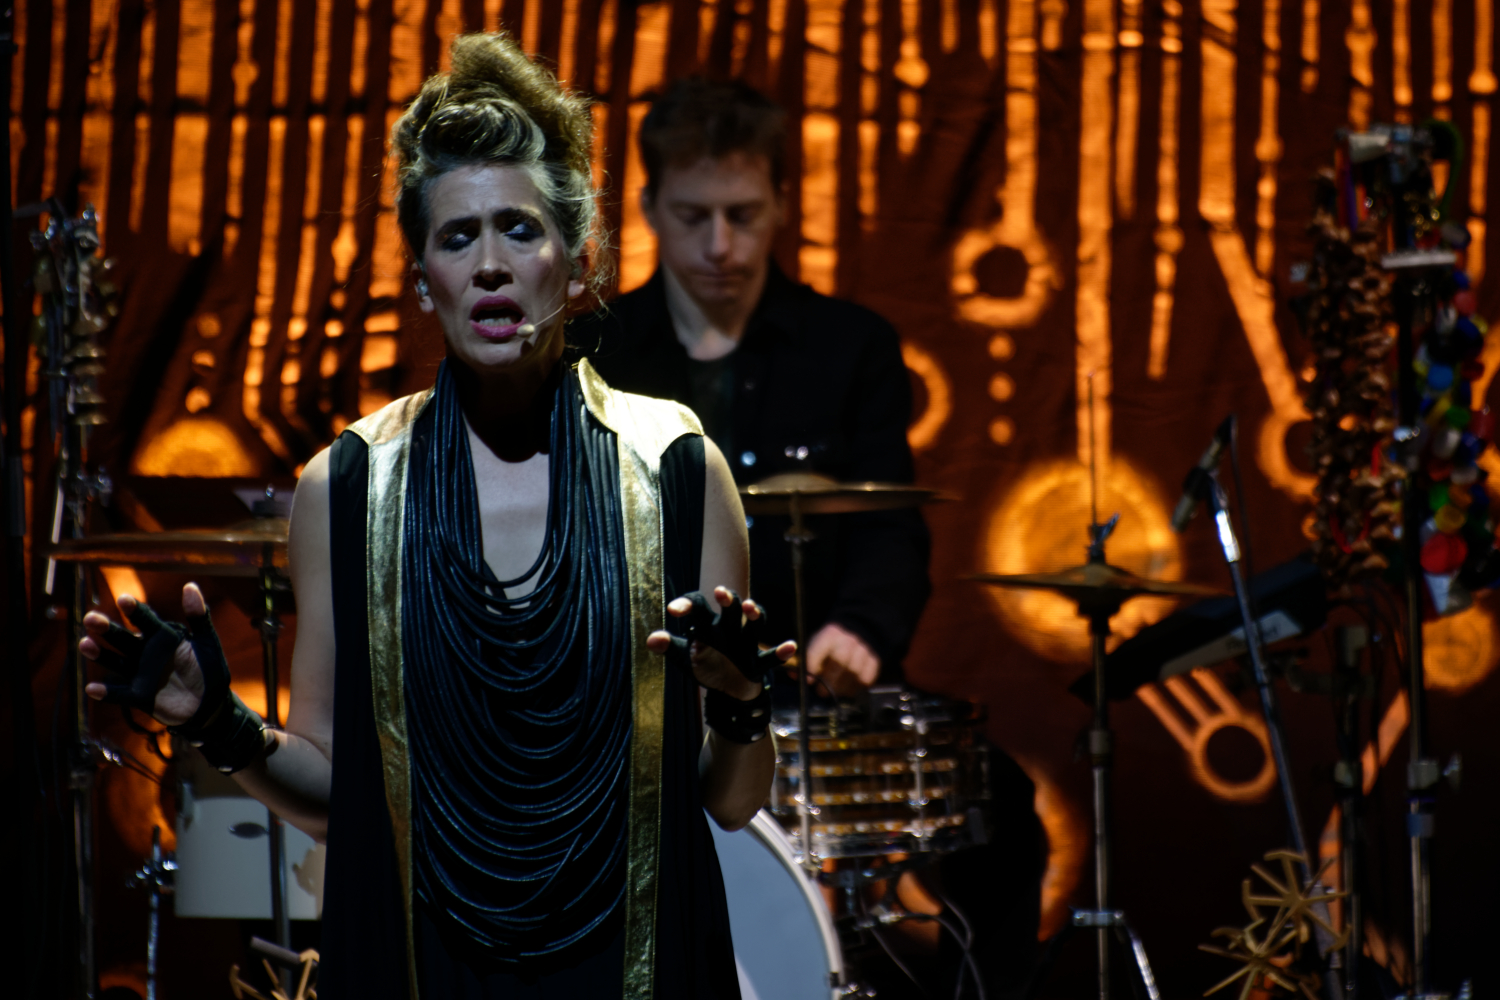 20190608 119 The Masonic - Imogen Heap.jpg